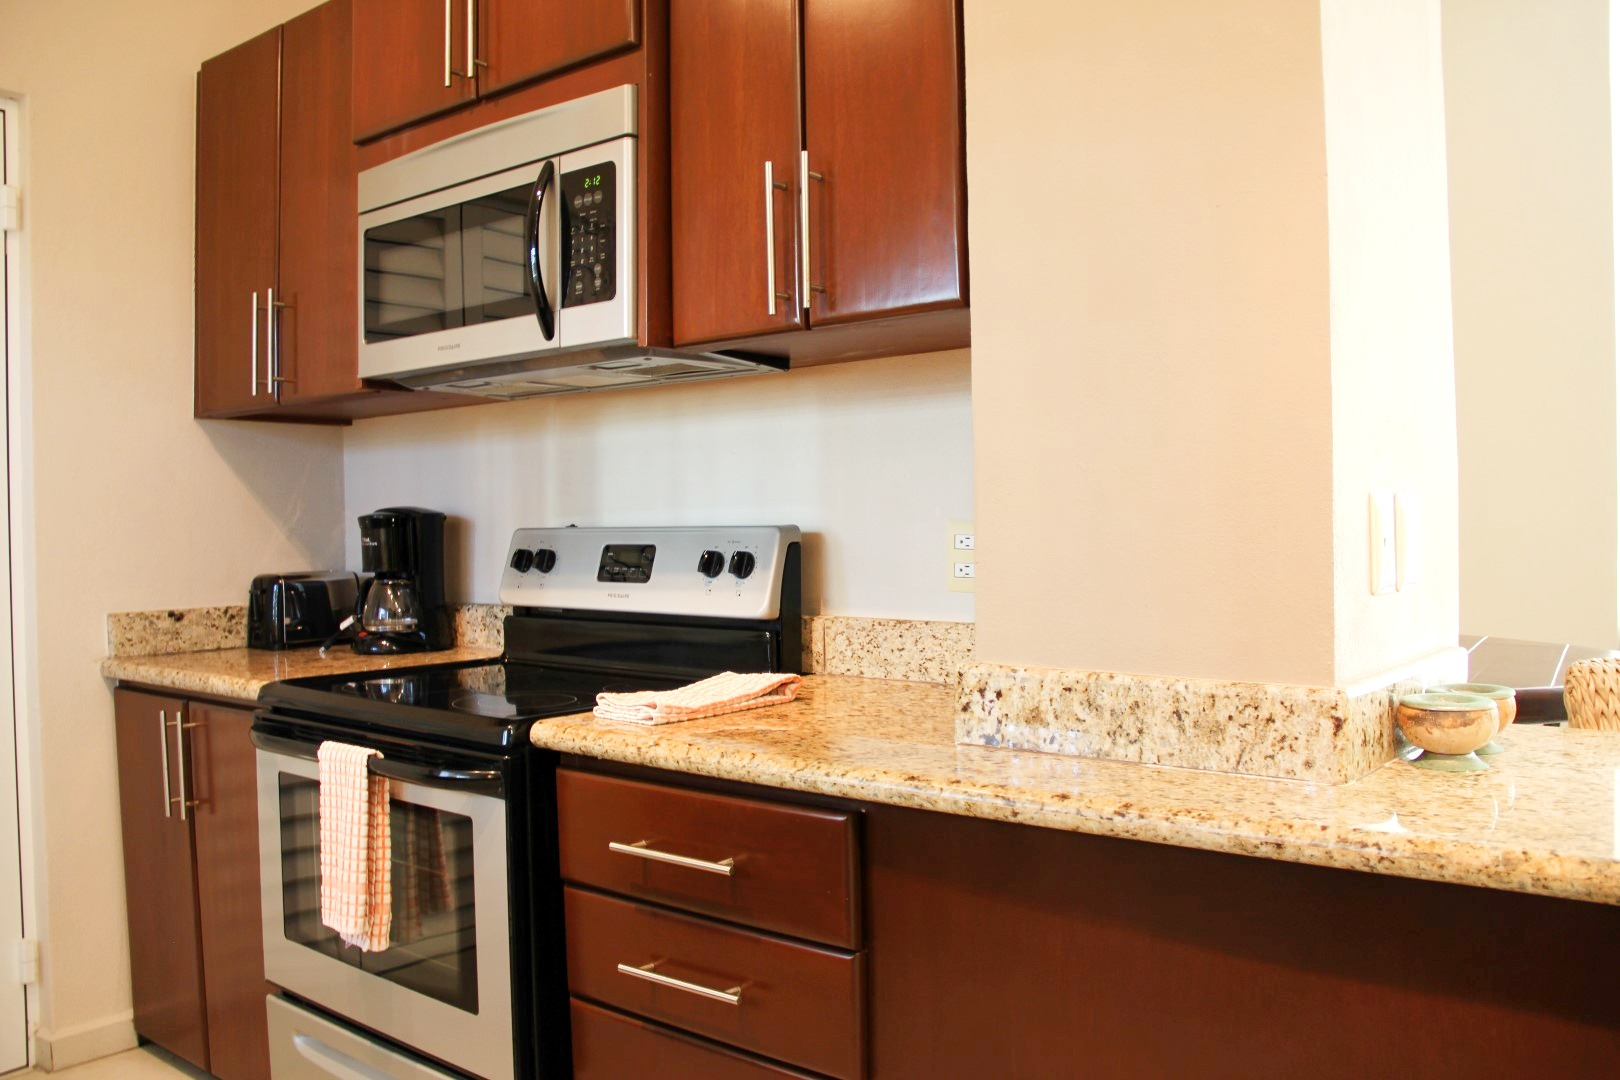 Stove, oven and microwave, as well as small appliances.